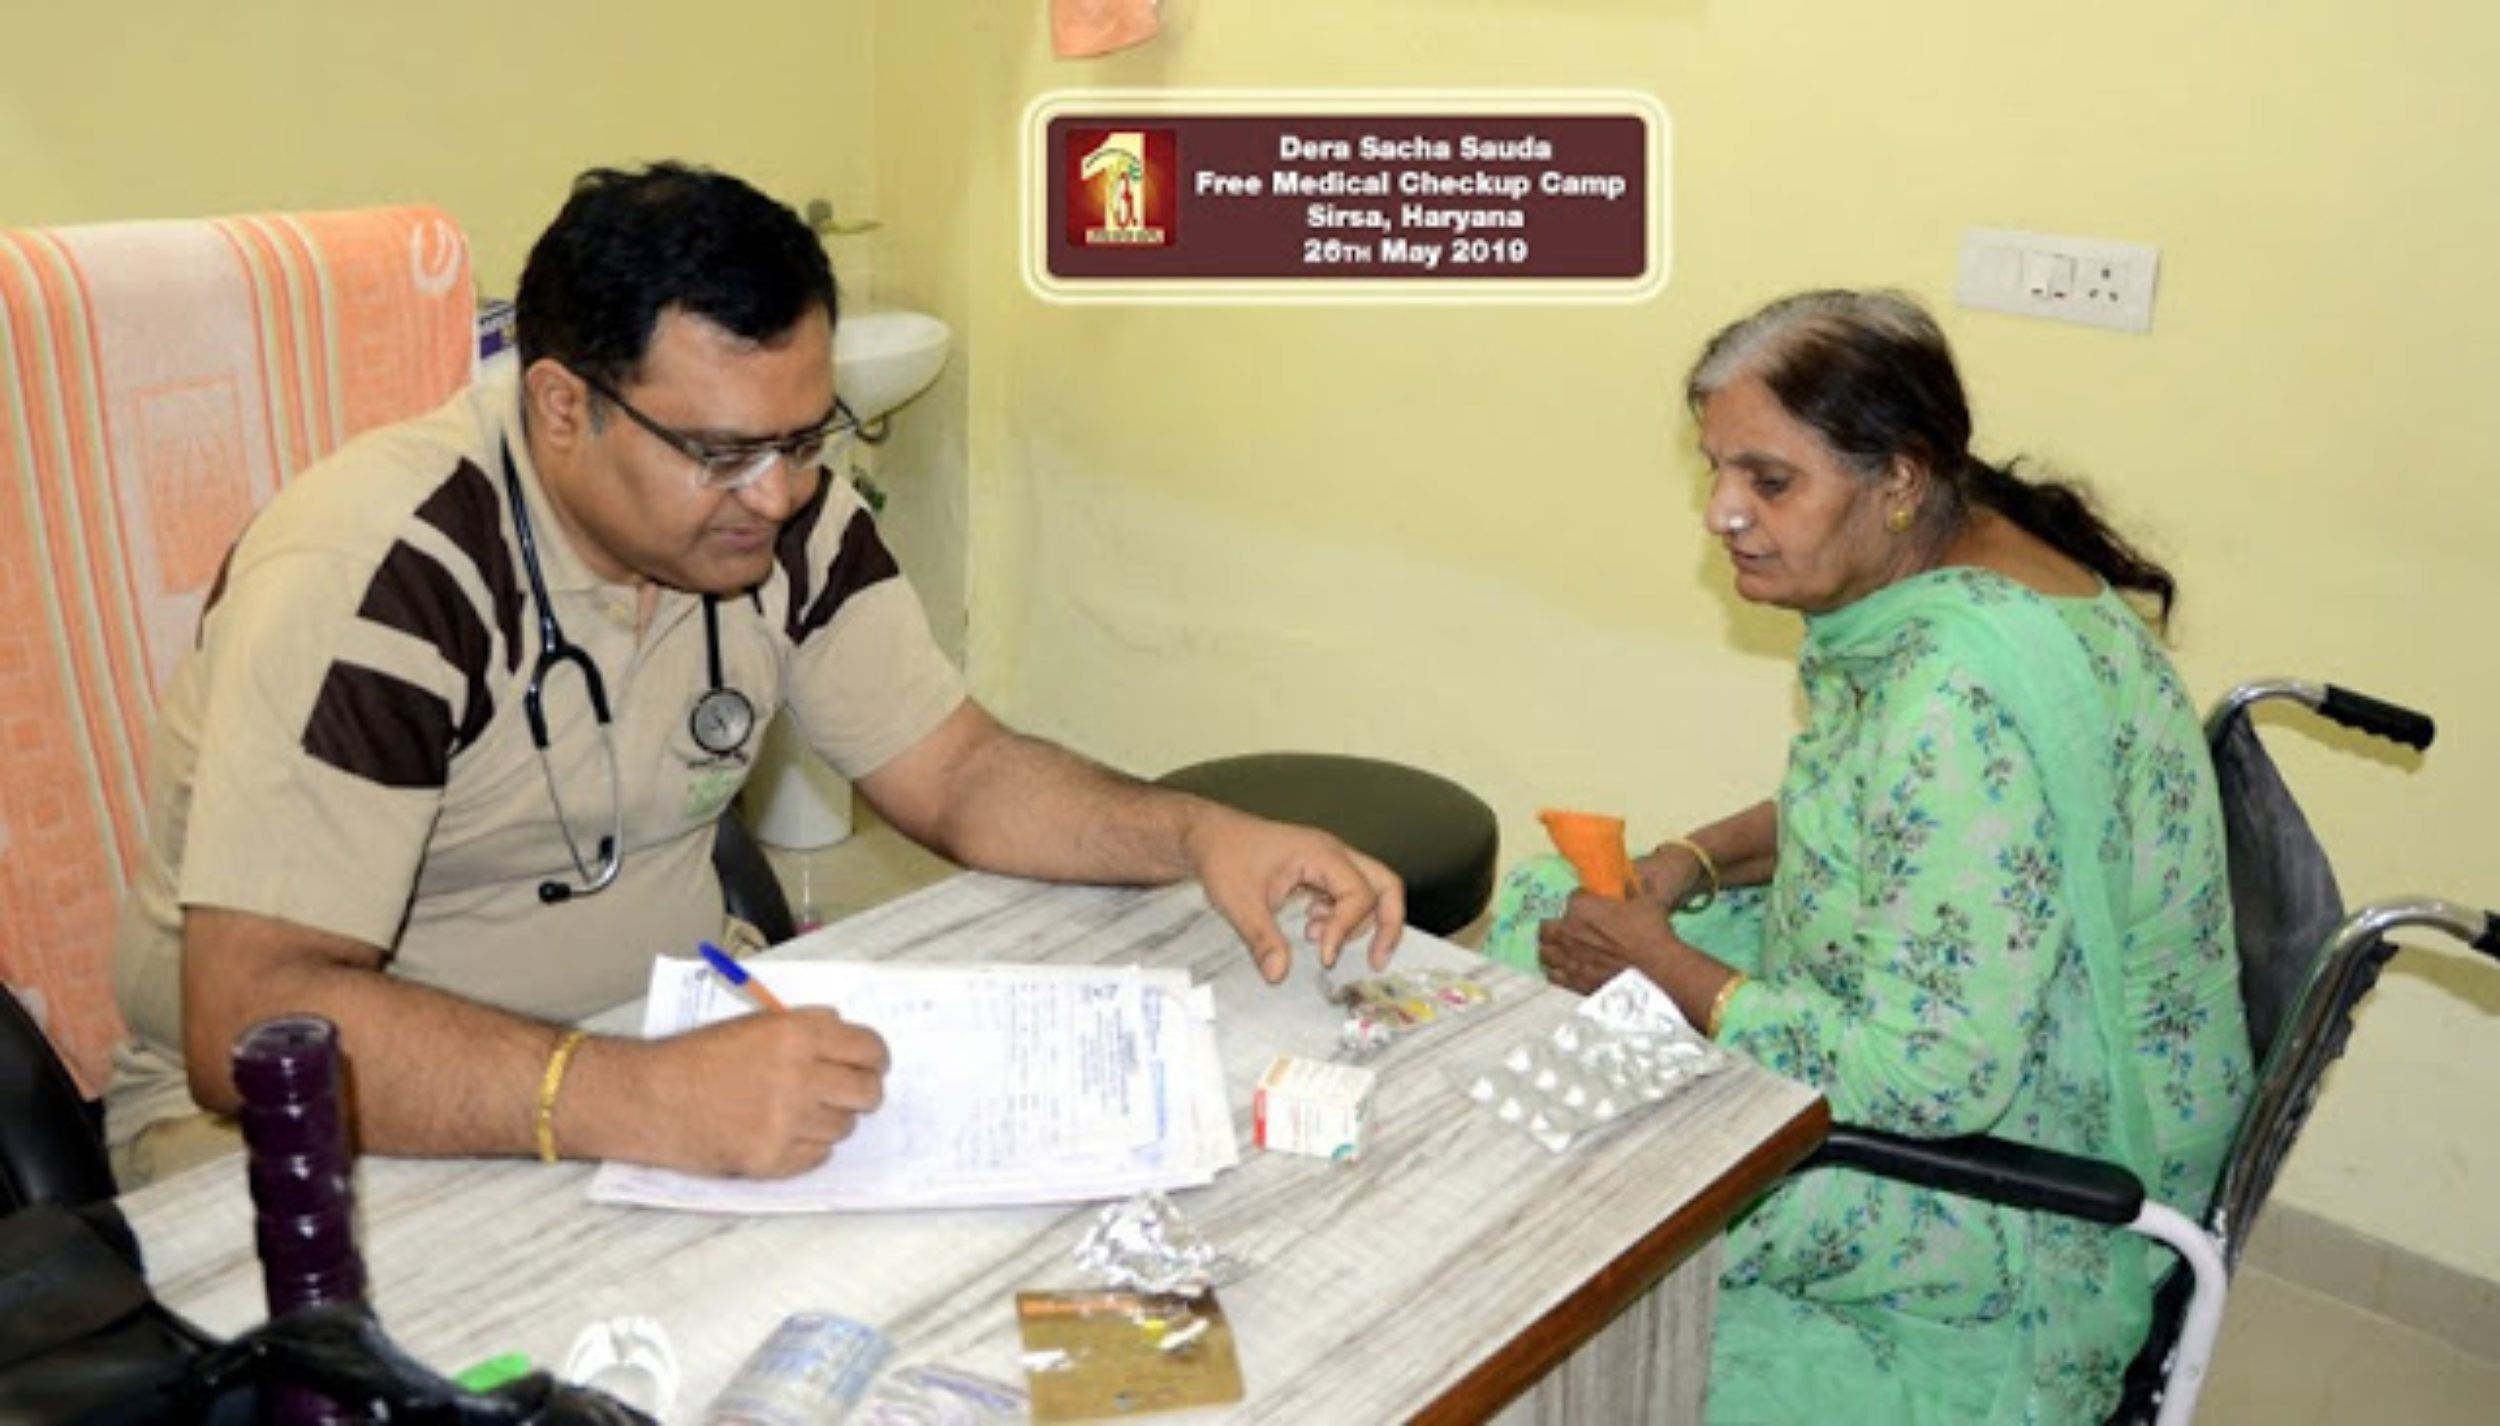 Patients examined in a Medical Camp conducted today at Shah